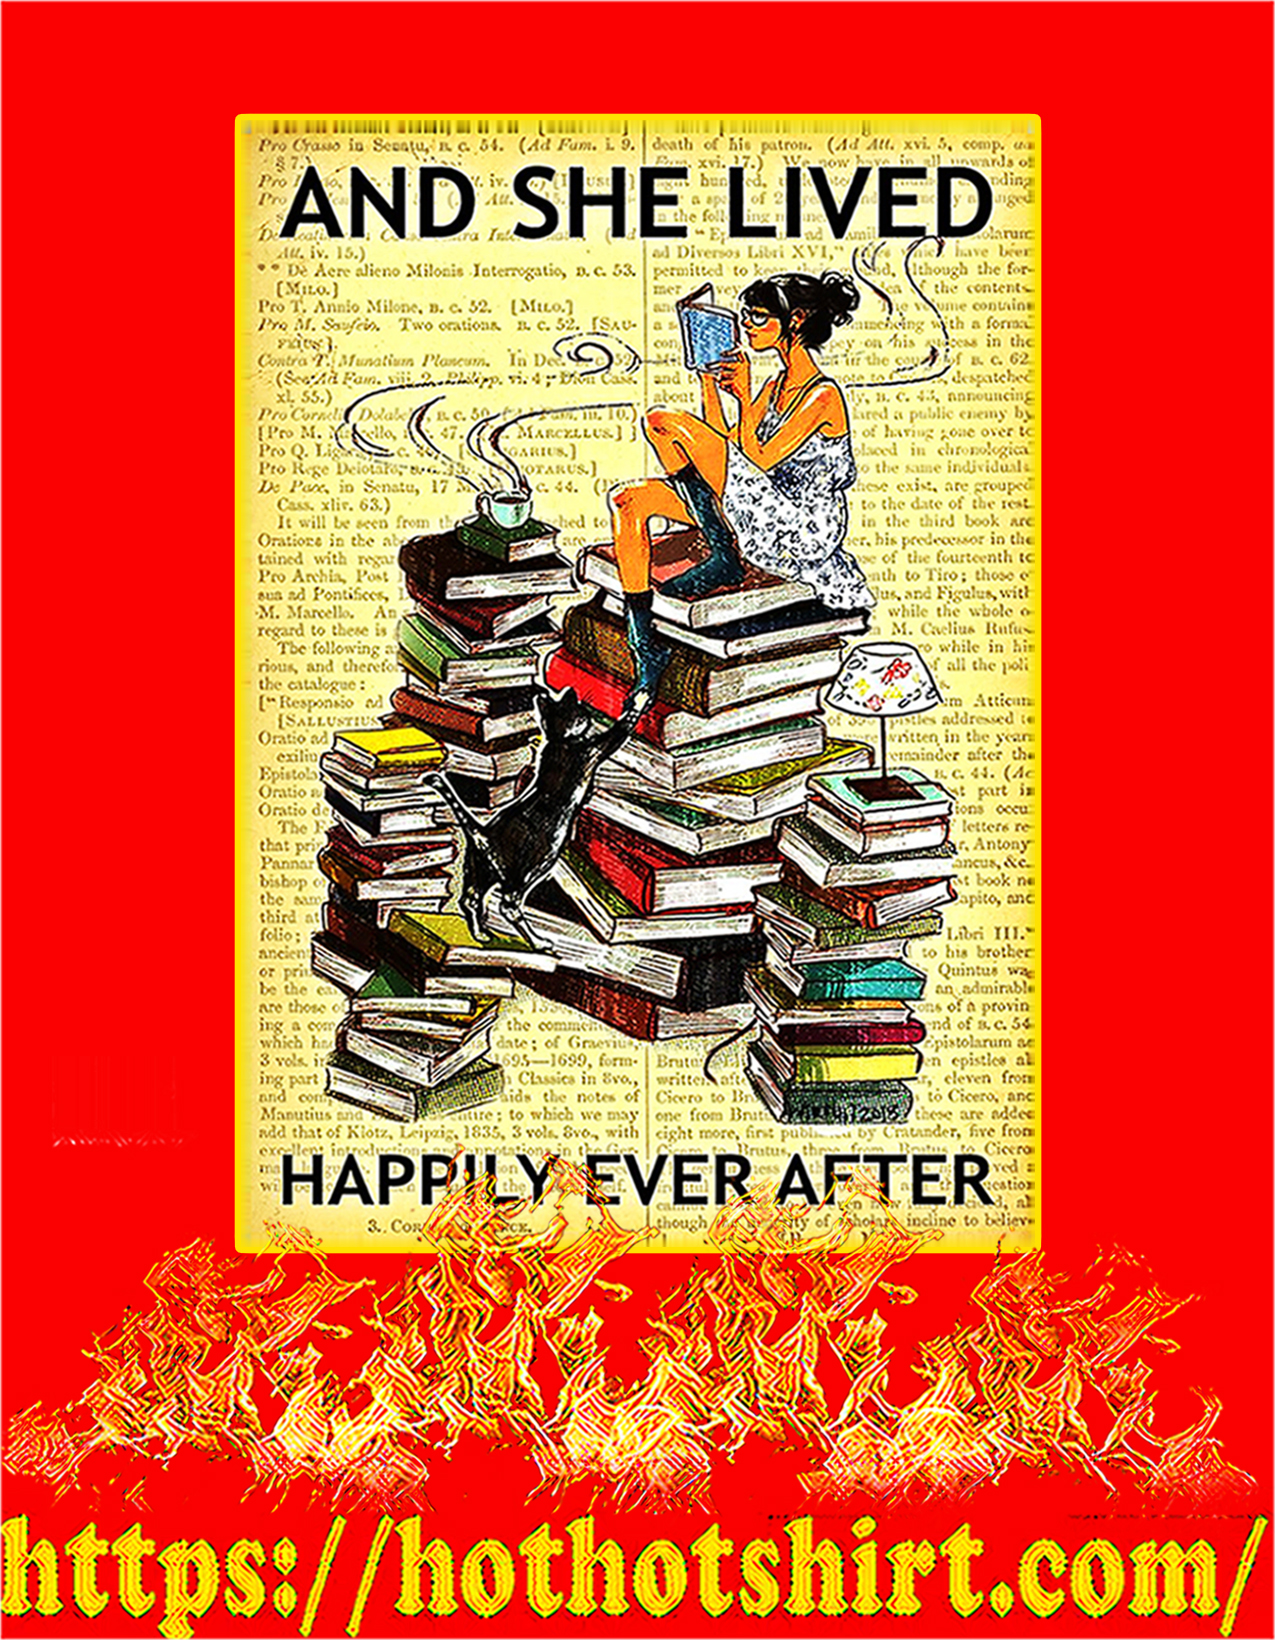 Book and cat and she lived happily ever after poster - A2